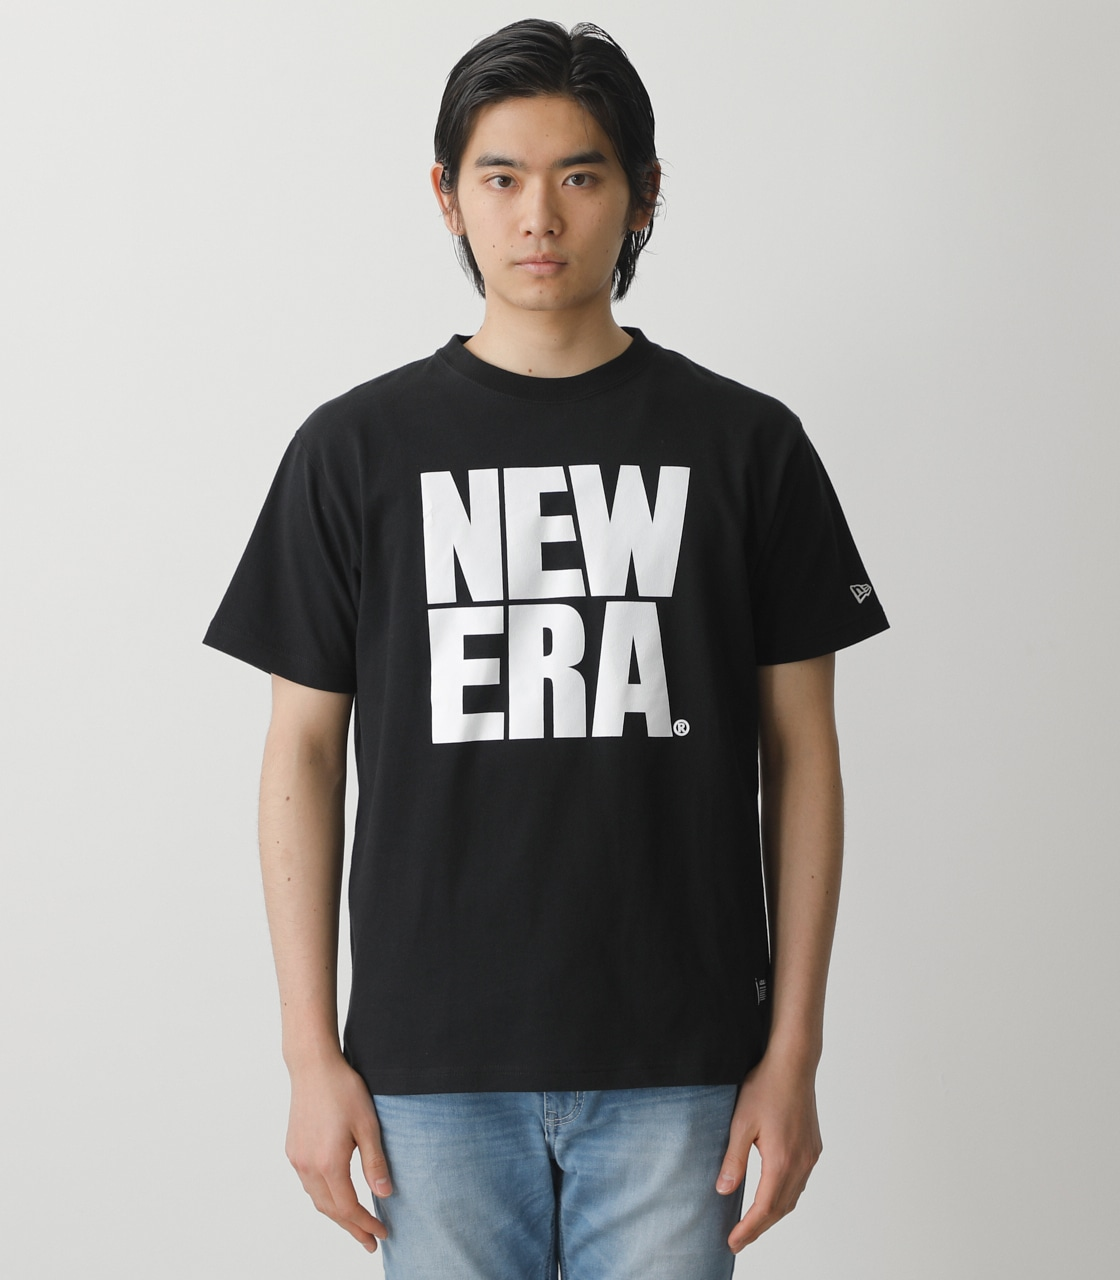 NEW ERA×AZUL T-SHIRTS/NEW ERA×AZULTシャツ 詳細画像 BLK 5